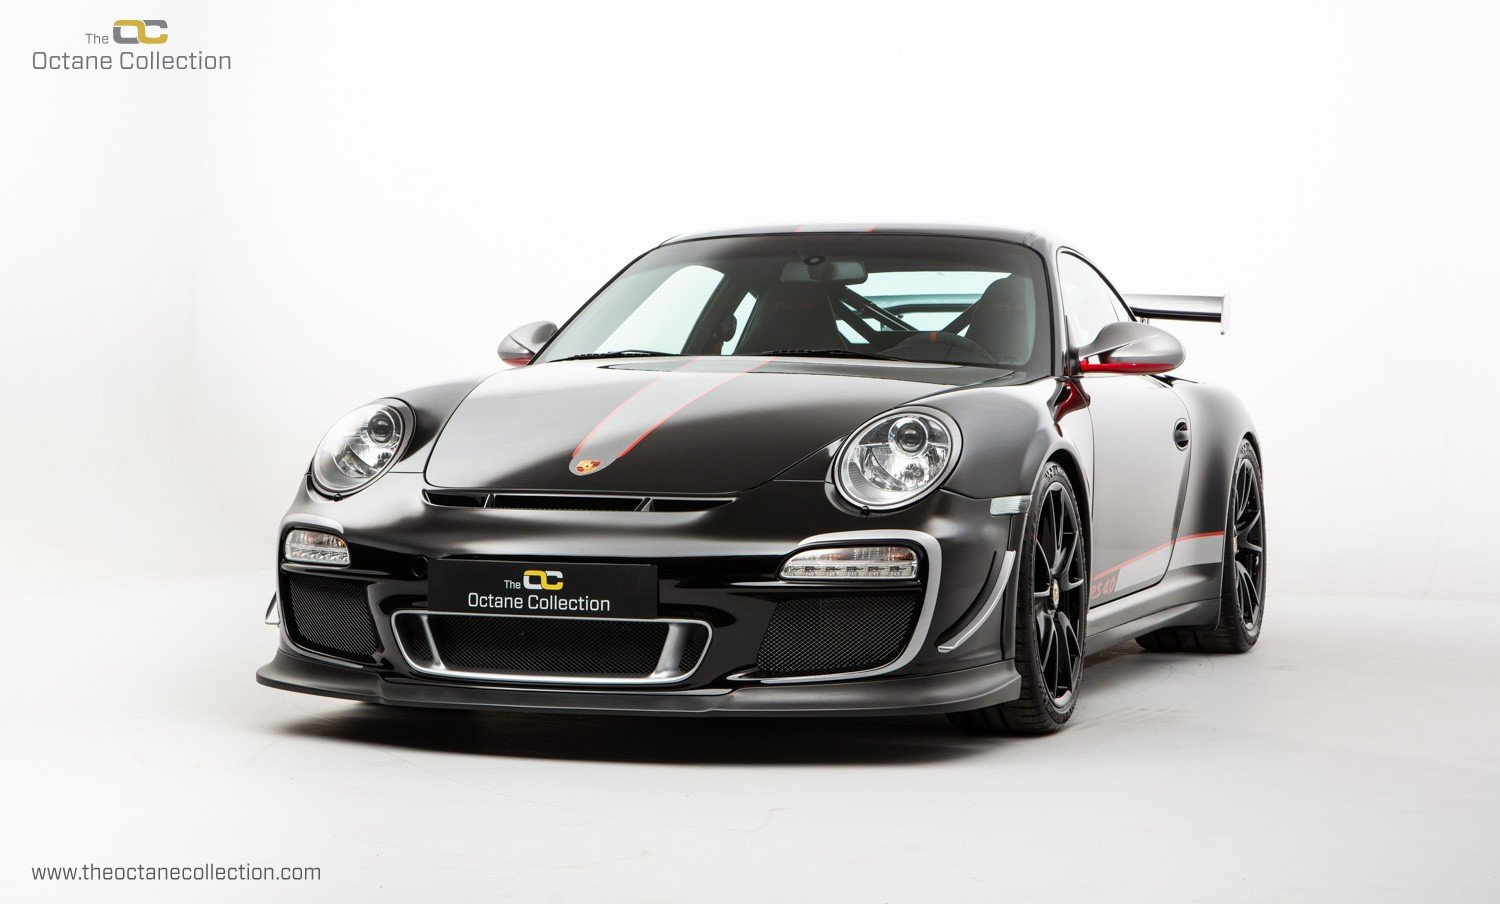 2011 PORSCHE 911 (997) GT3 RS 4.0 // C00 LHD GERMAN SUPPLIED For Sale (picture 2 of 6)